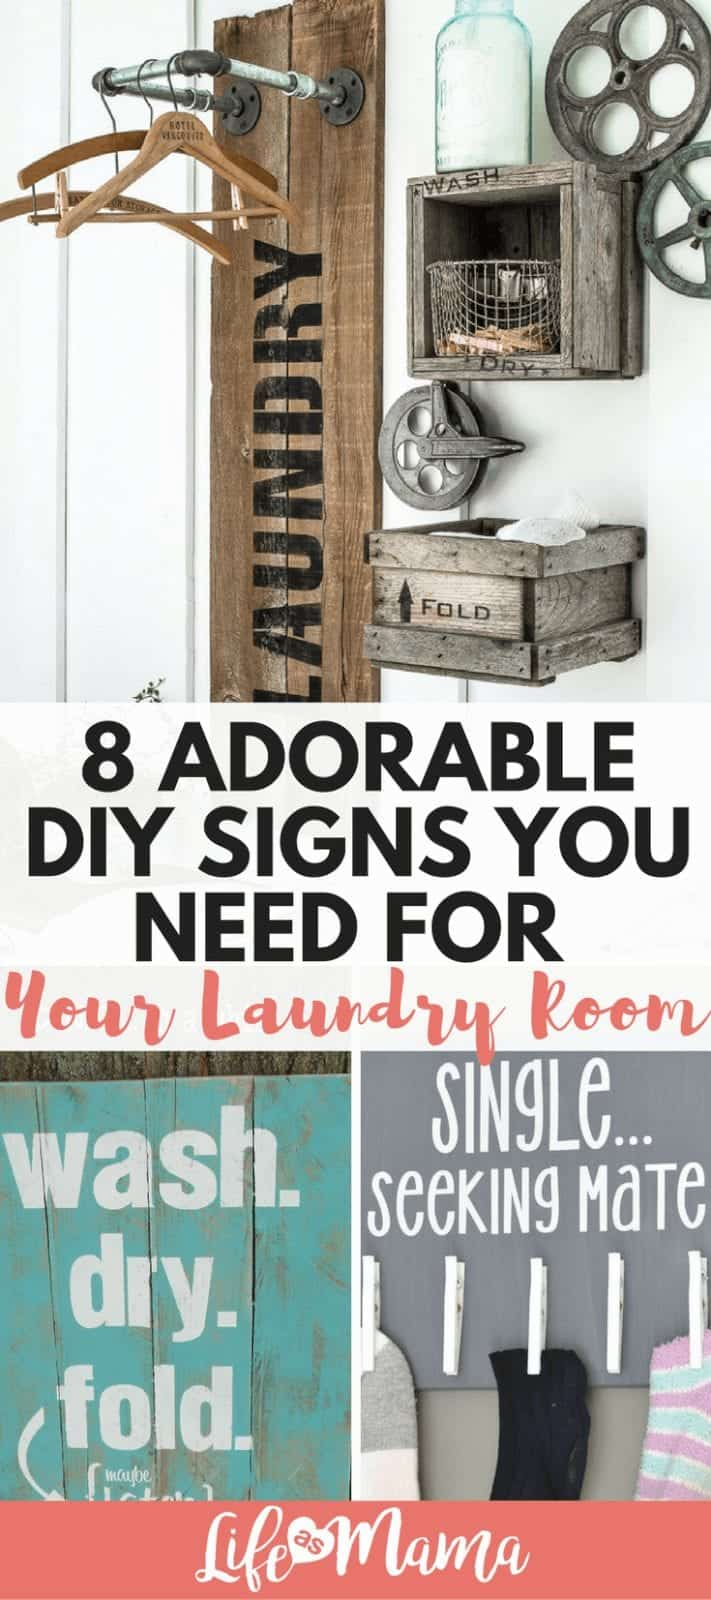 photo about Free Printable Laundry Room Signs called 8 Lovely Do-it-yourself Signs or symptoms By yourself Require For Your Laundry House